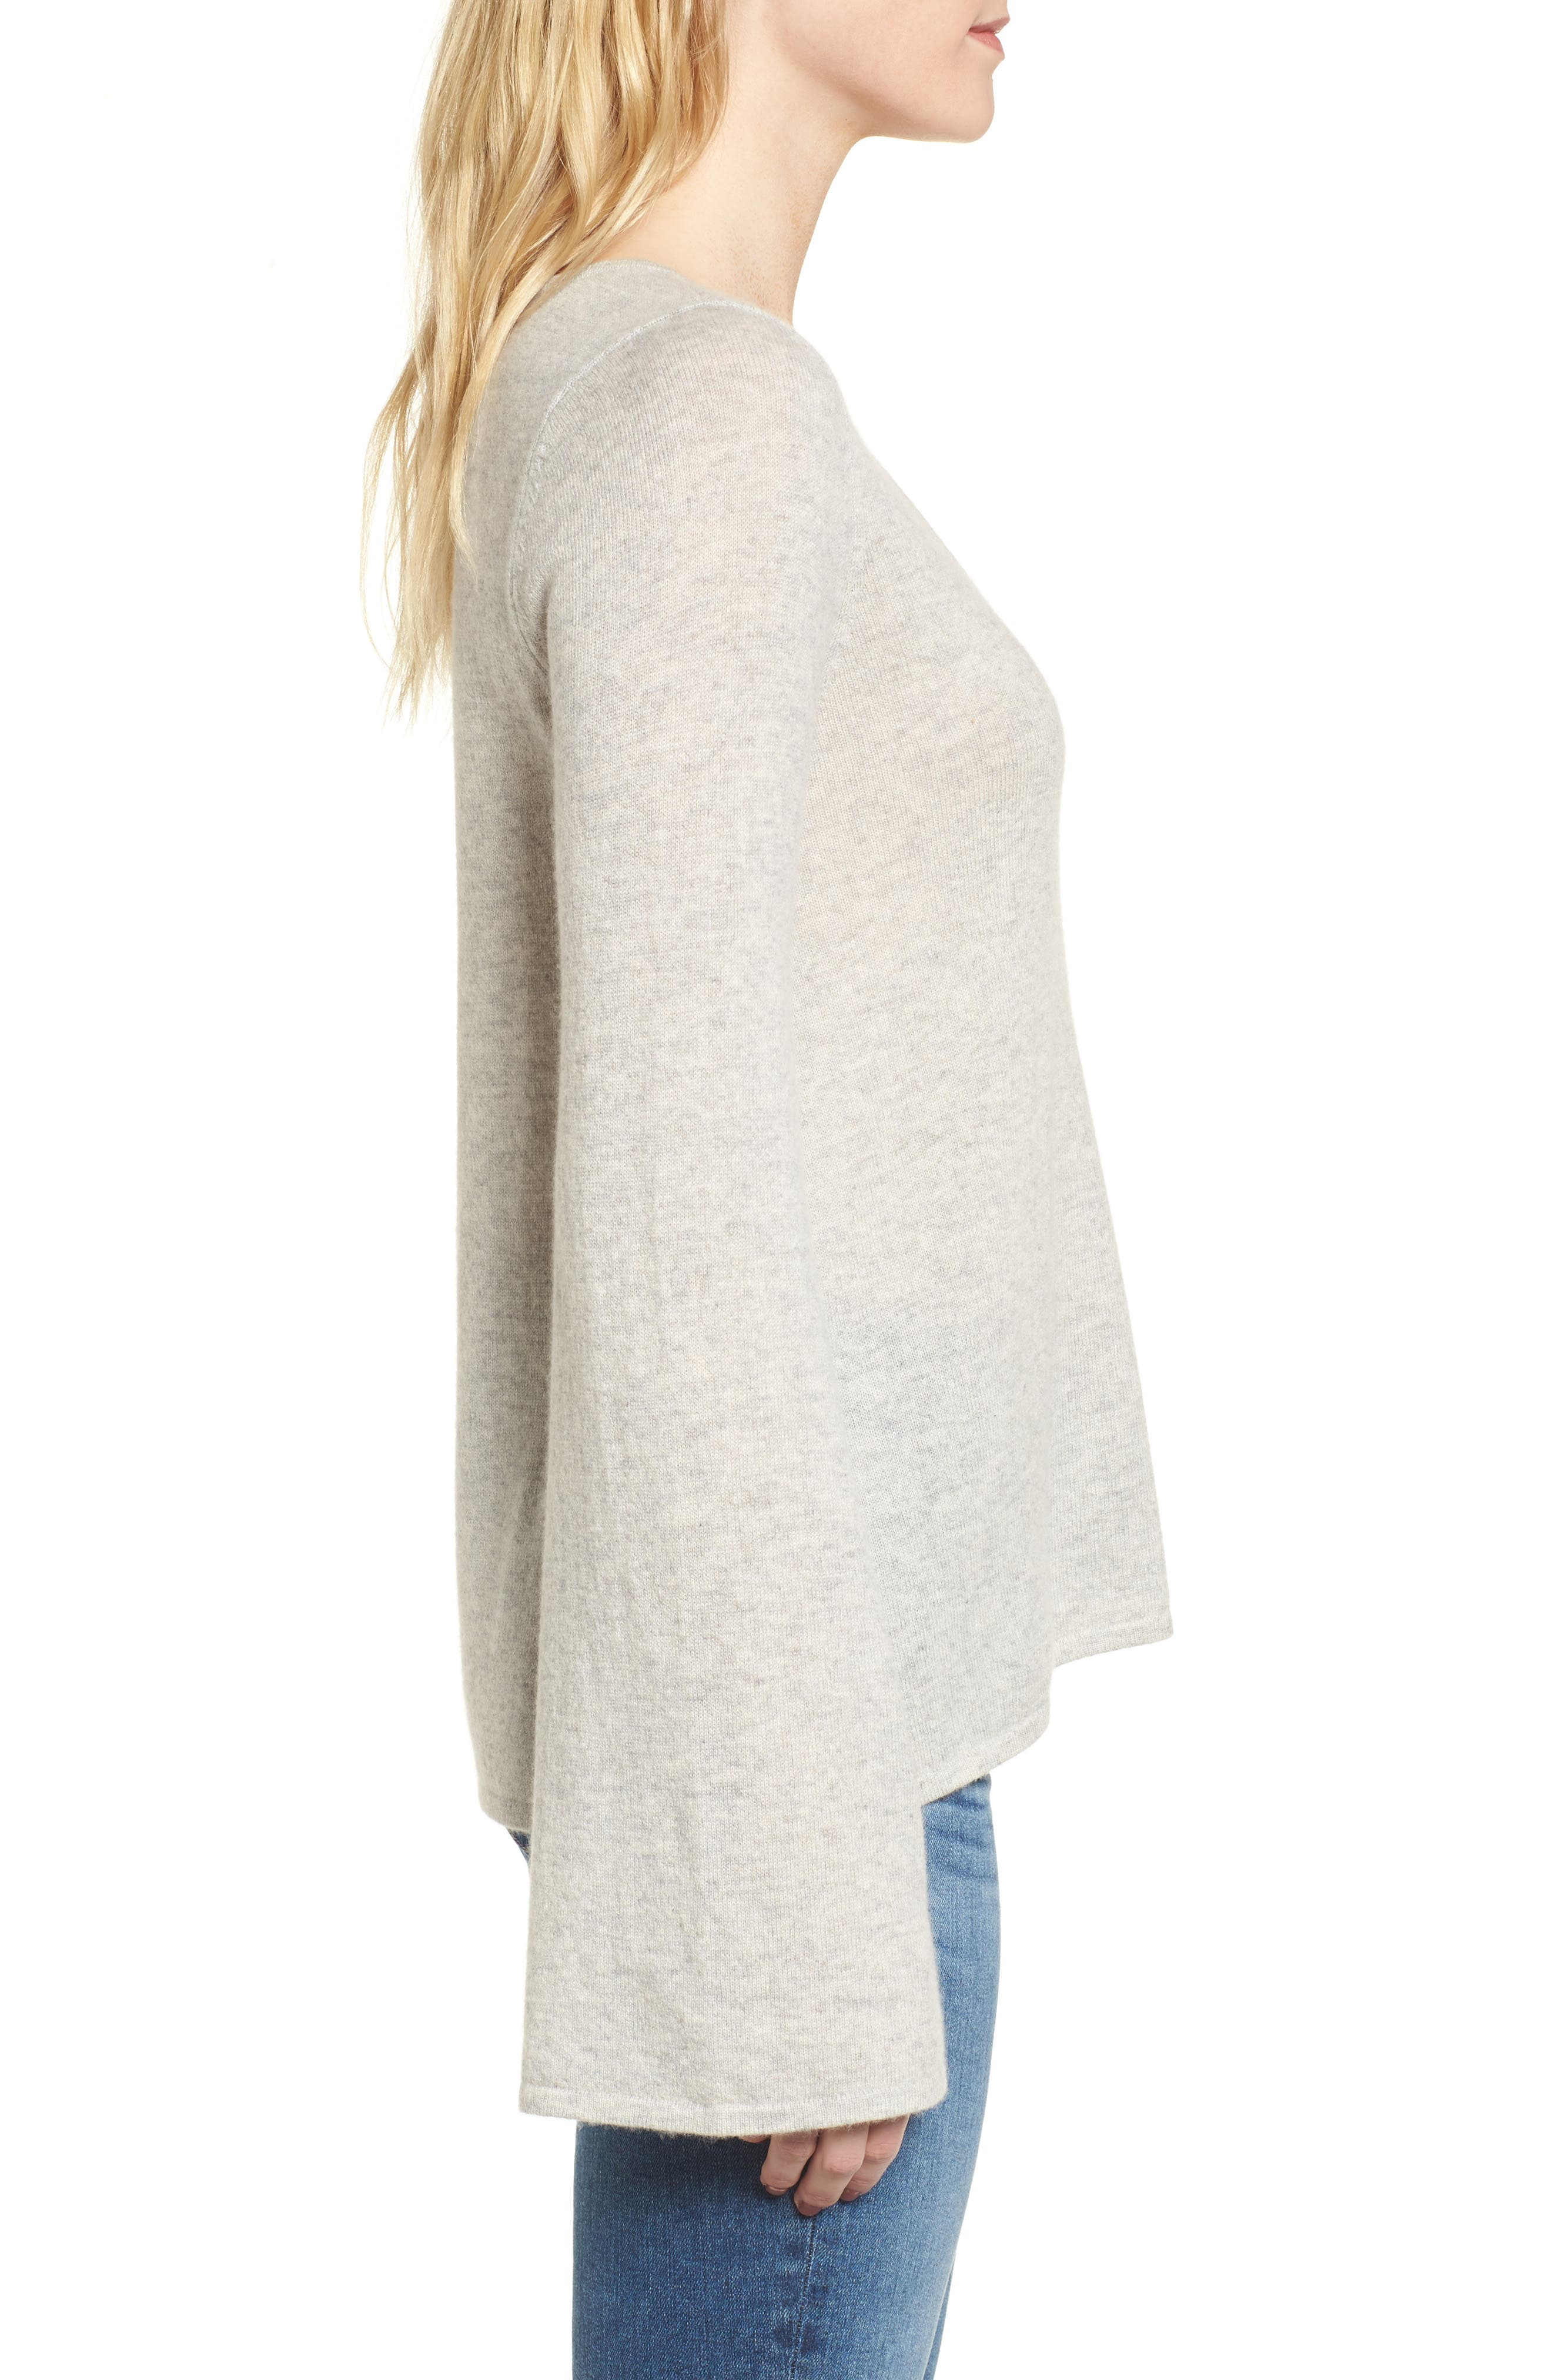 Marylee Cashmere Top,                             Alternate thumbnail 3, color,                             037